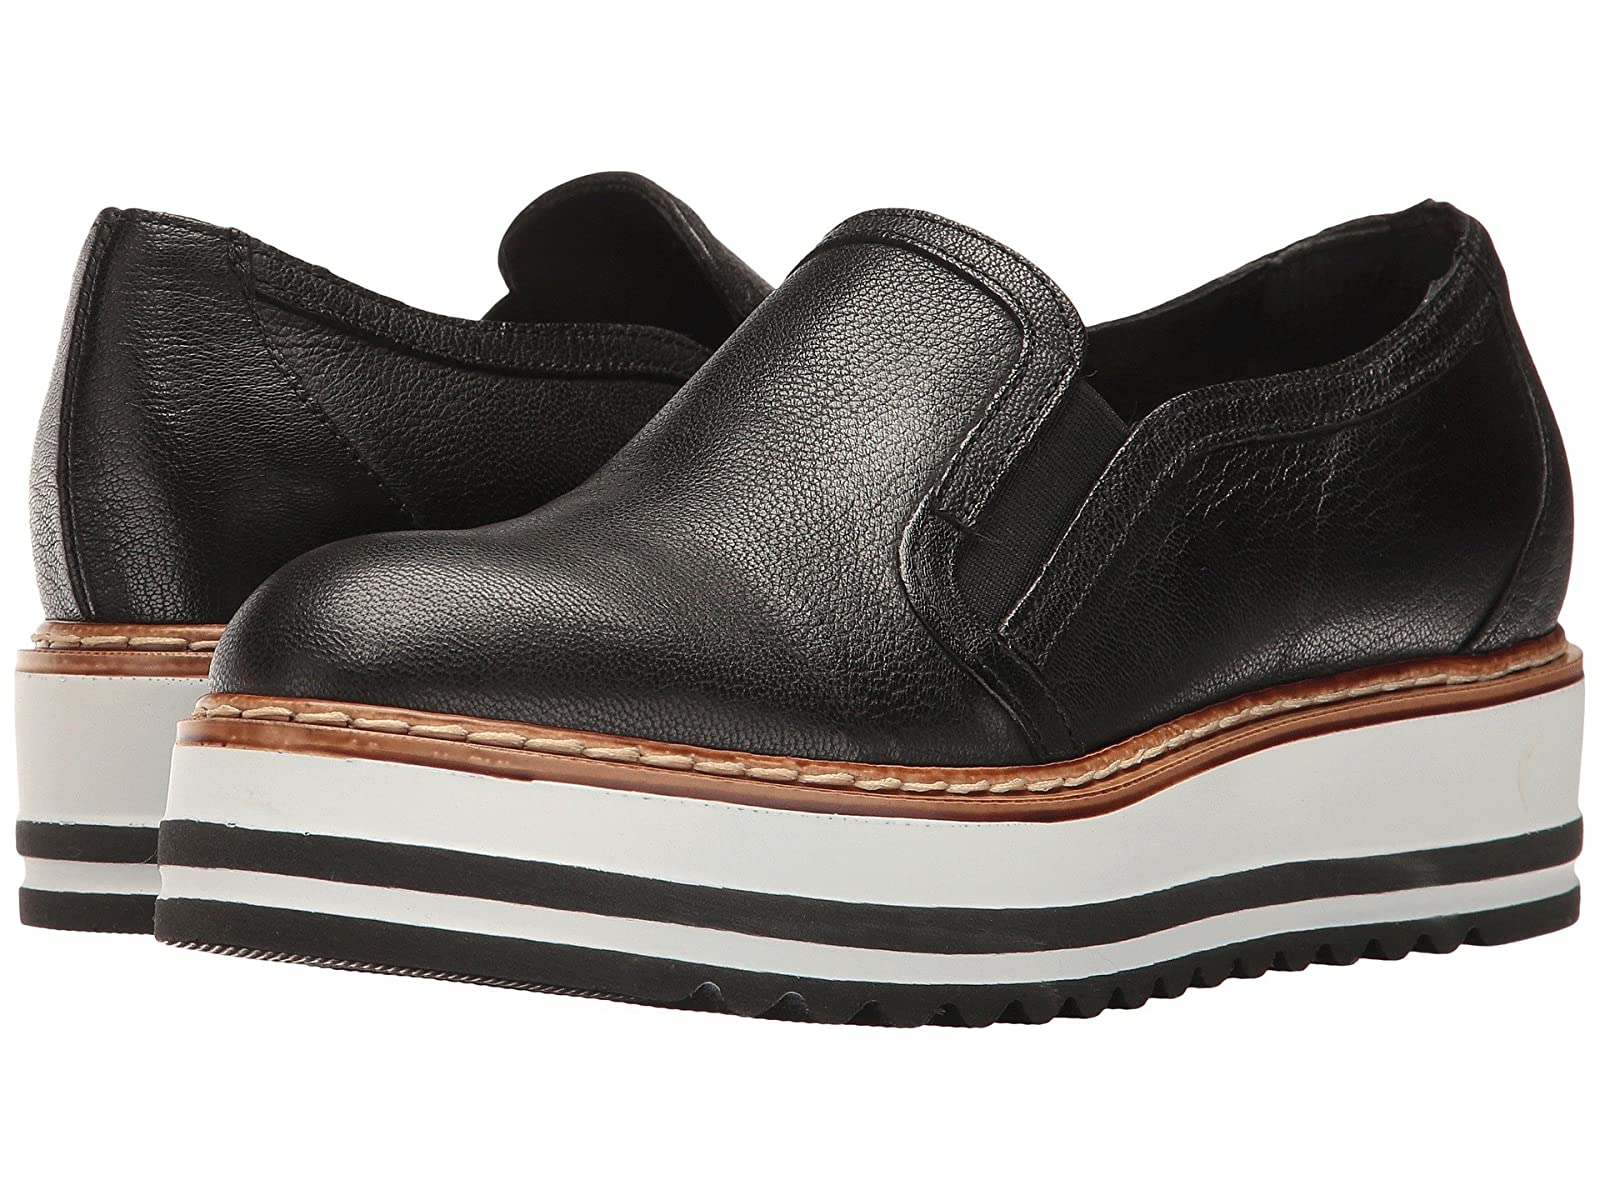 Summit by White Mountain BeltonAtmospheric grades have affordable shoes